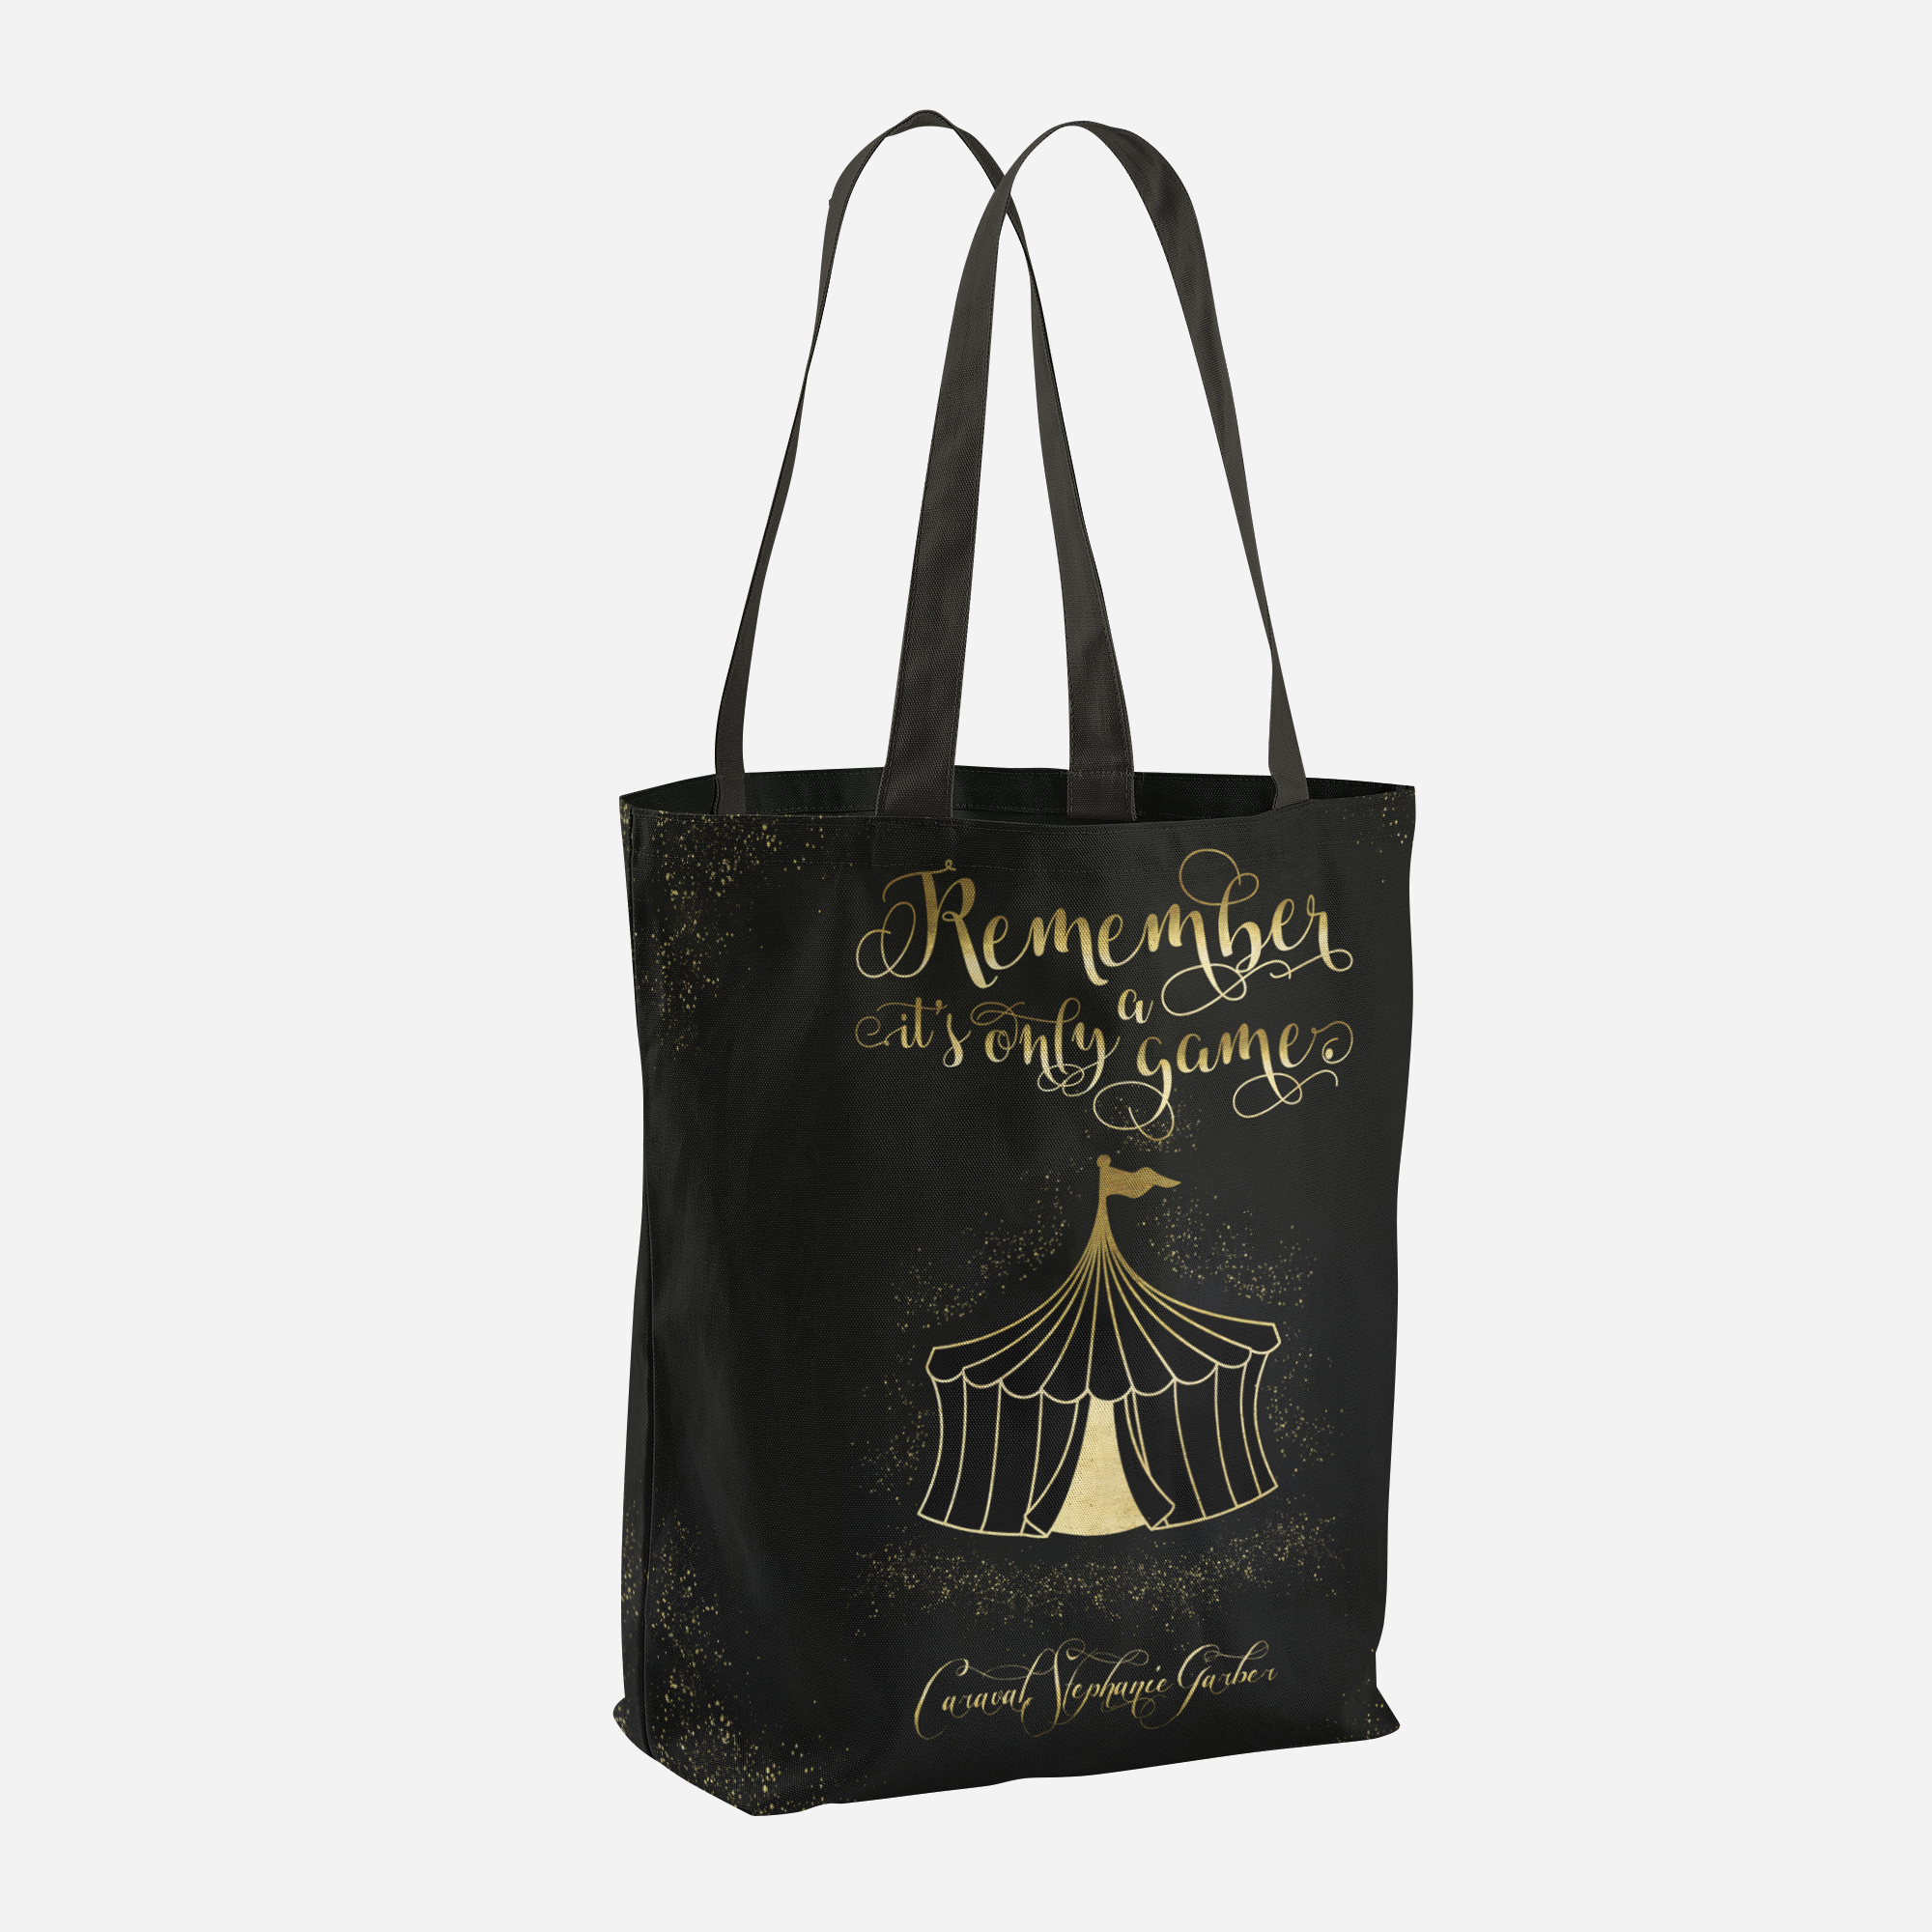 Remember, it's only a game. Caraval Tote Bag - LitLifeCo.